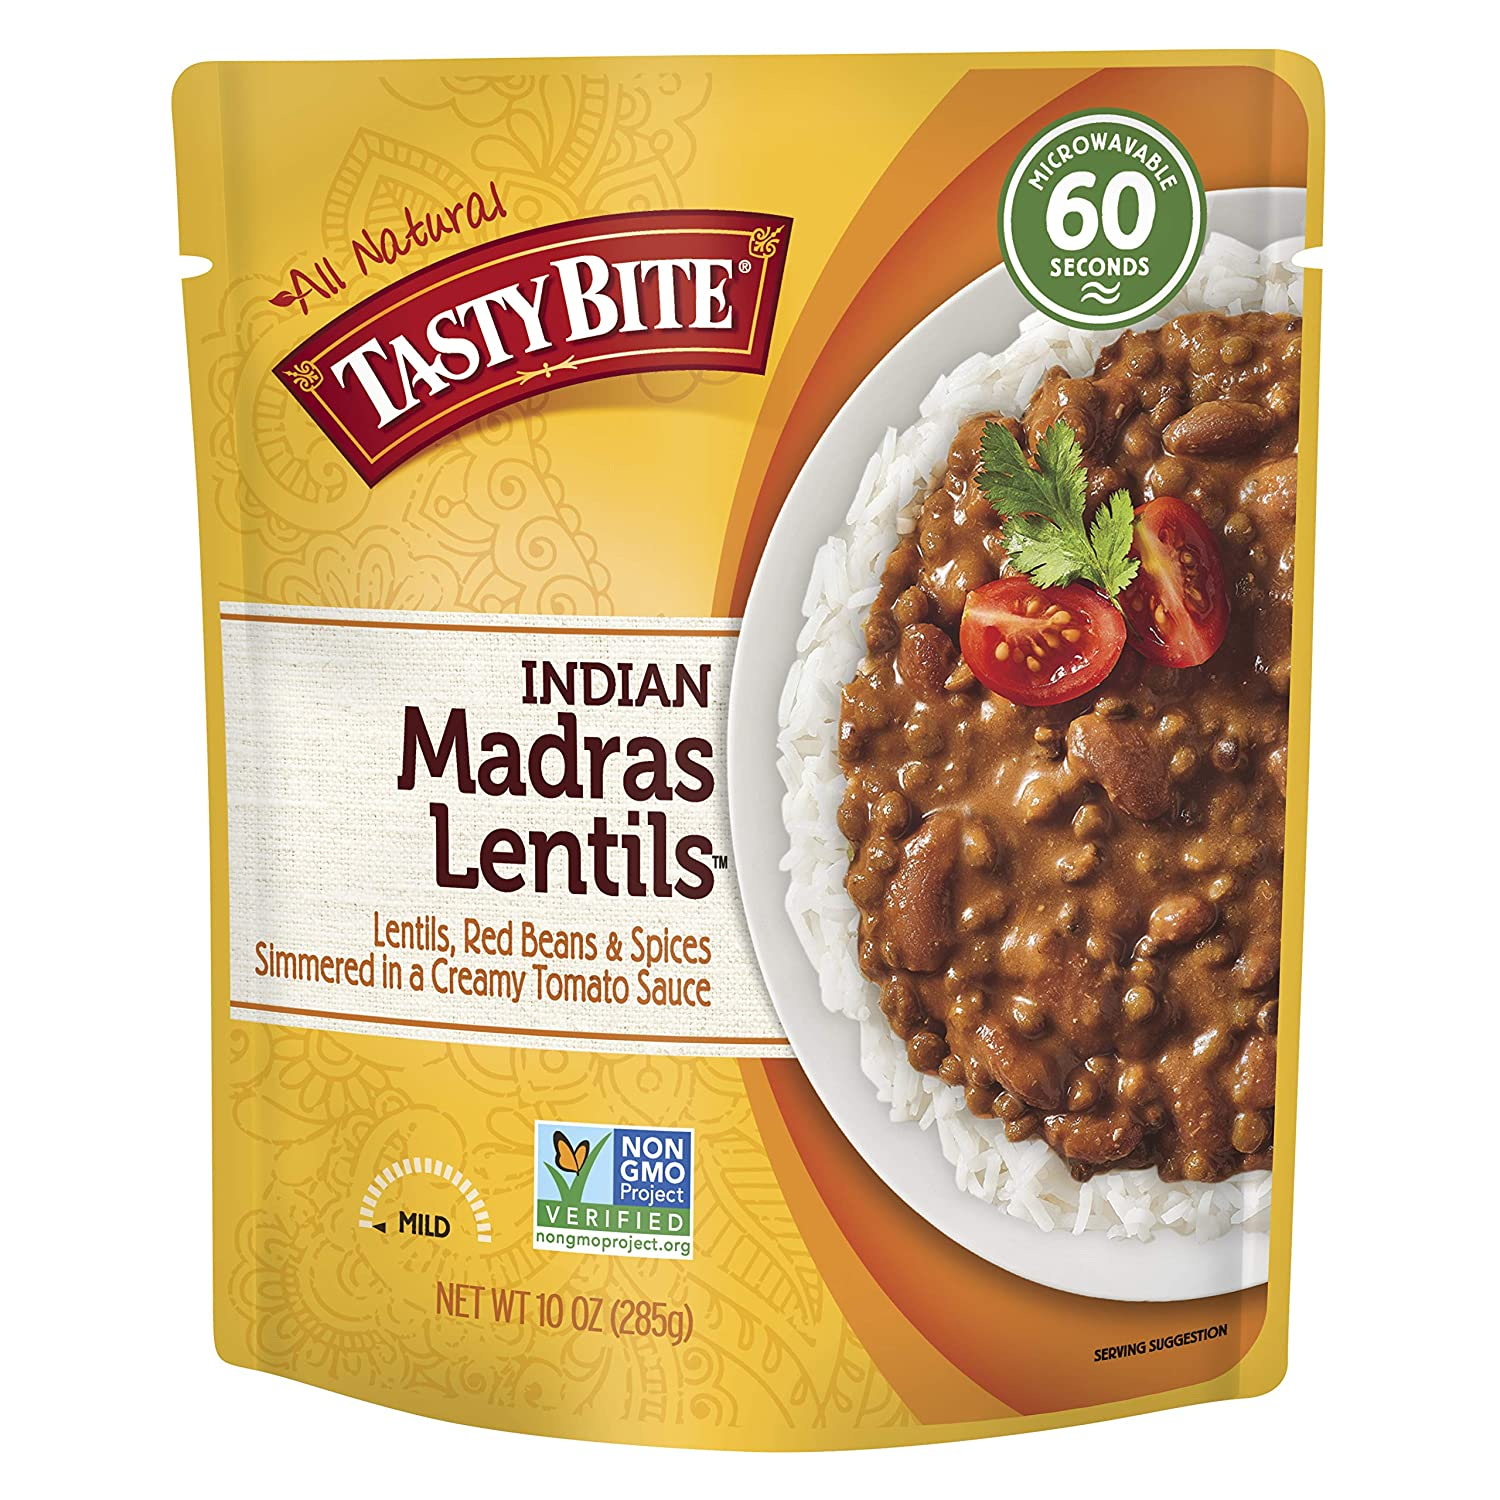 Tasty Bite Indian Entree Madras Lentils 10 Ounce (Pack of 6), Fully Cooked  Indian Entrée with Lentils Red Beans & Spices in a Creamy Tomato Sauce,